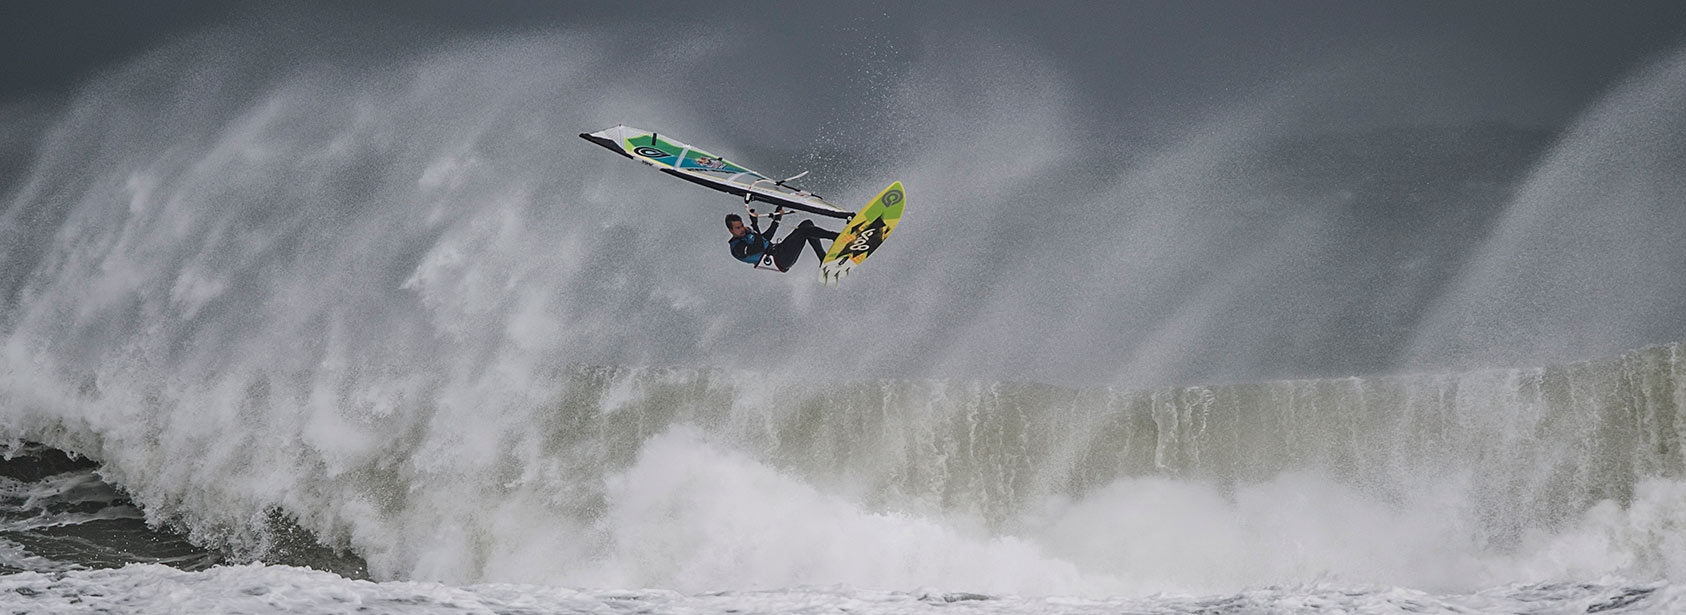 Marcilio Browne of Brasil performs at the Mission 3 of the Red Bull Storm Chase at the Bluff in Cornwall, England on February 8 2014. (Sebastian Marko/Red Bull Content Pool)